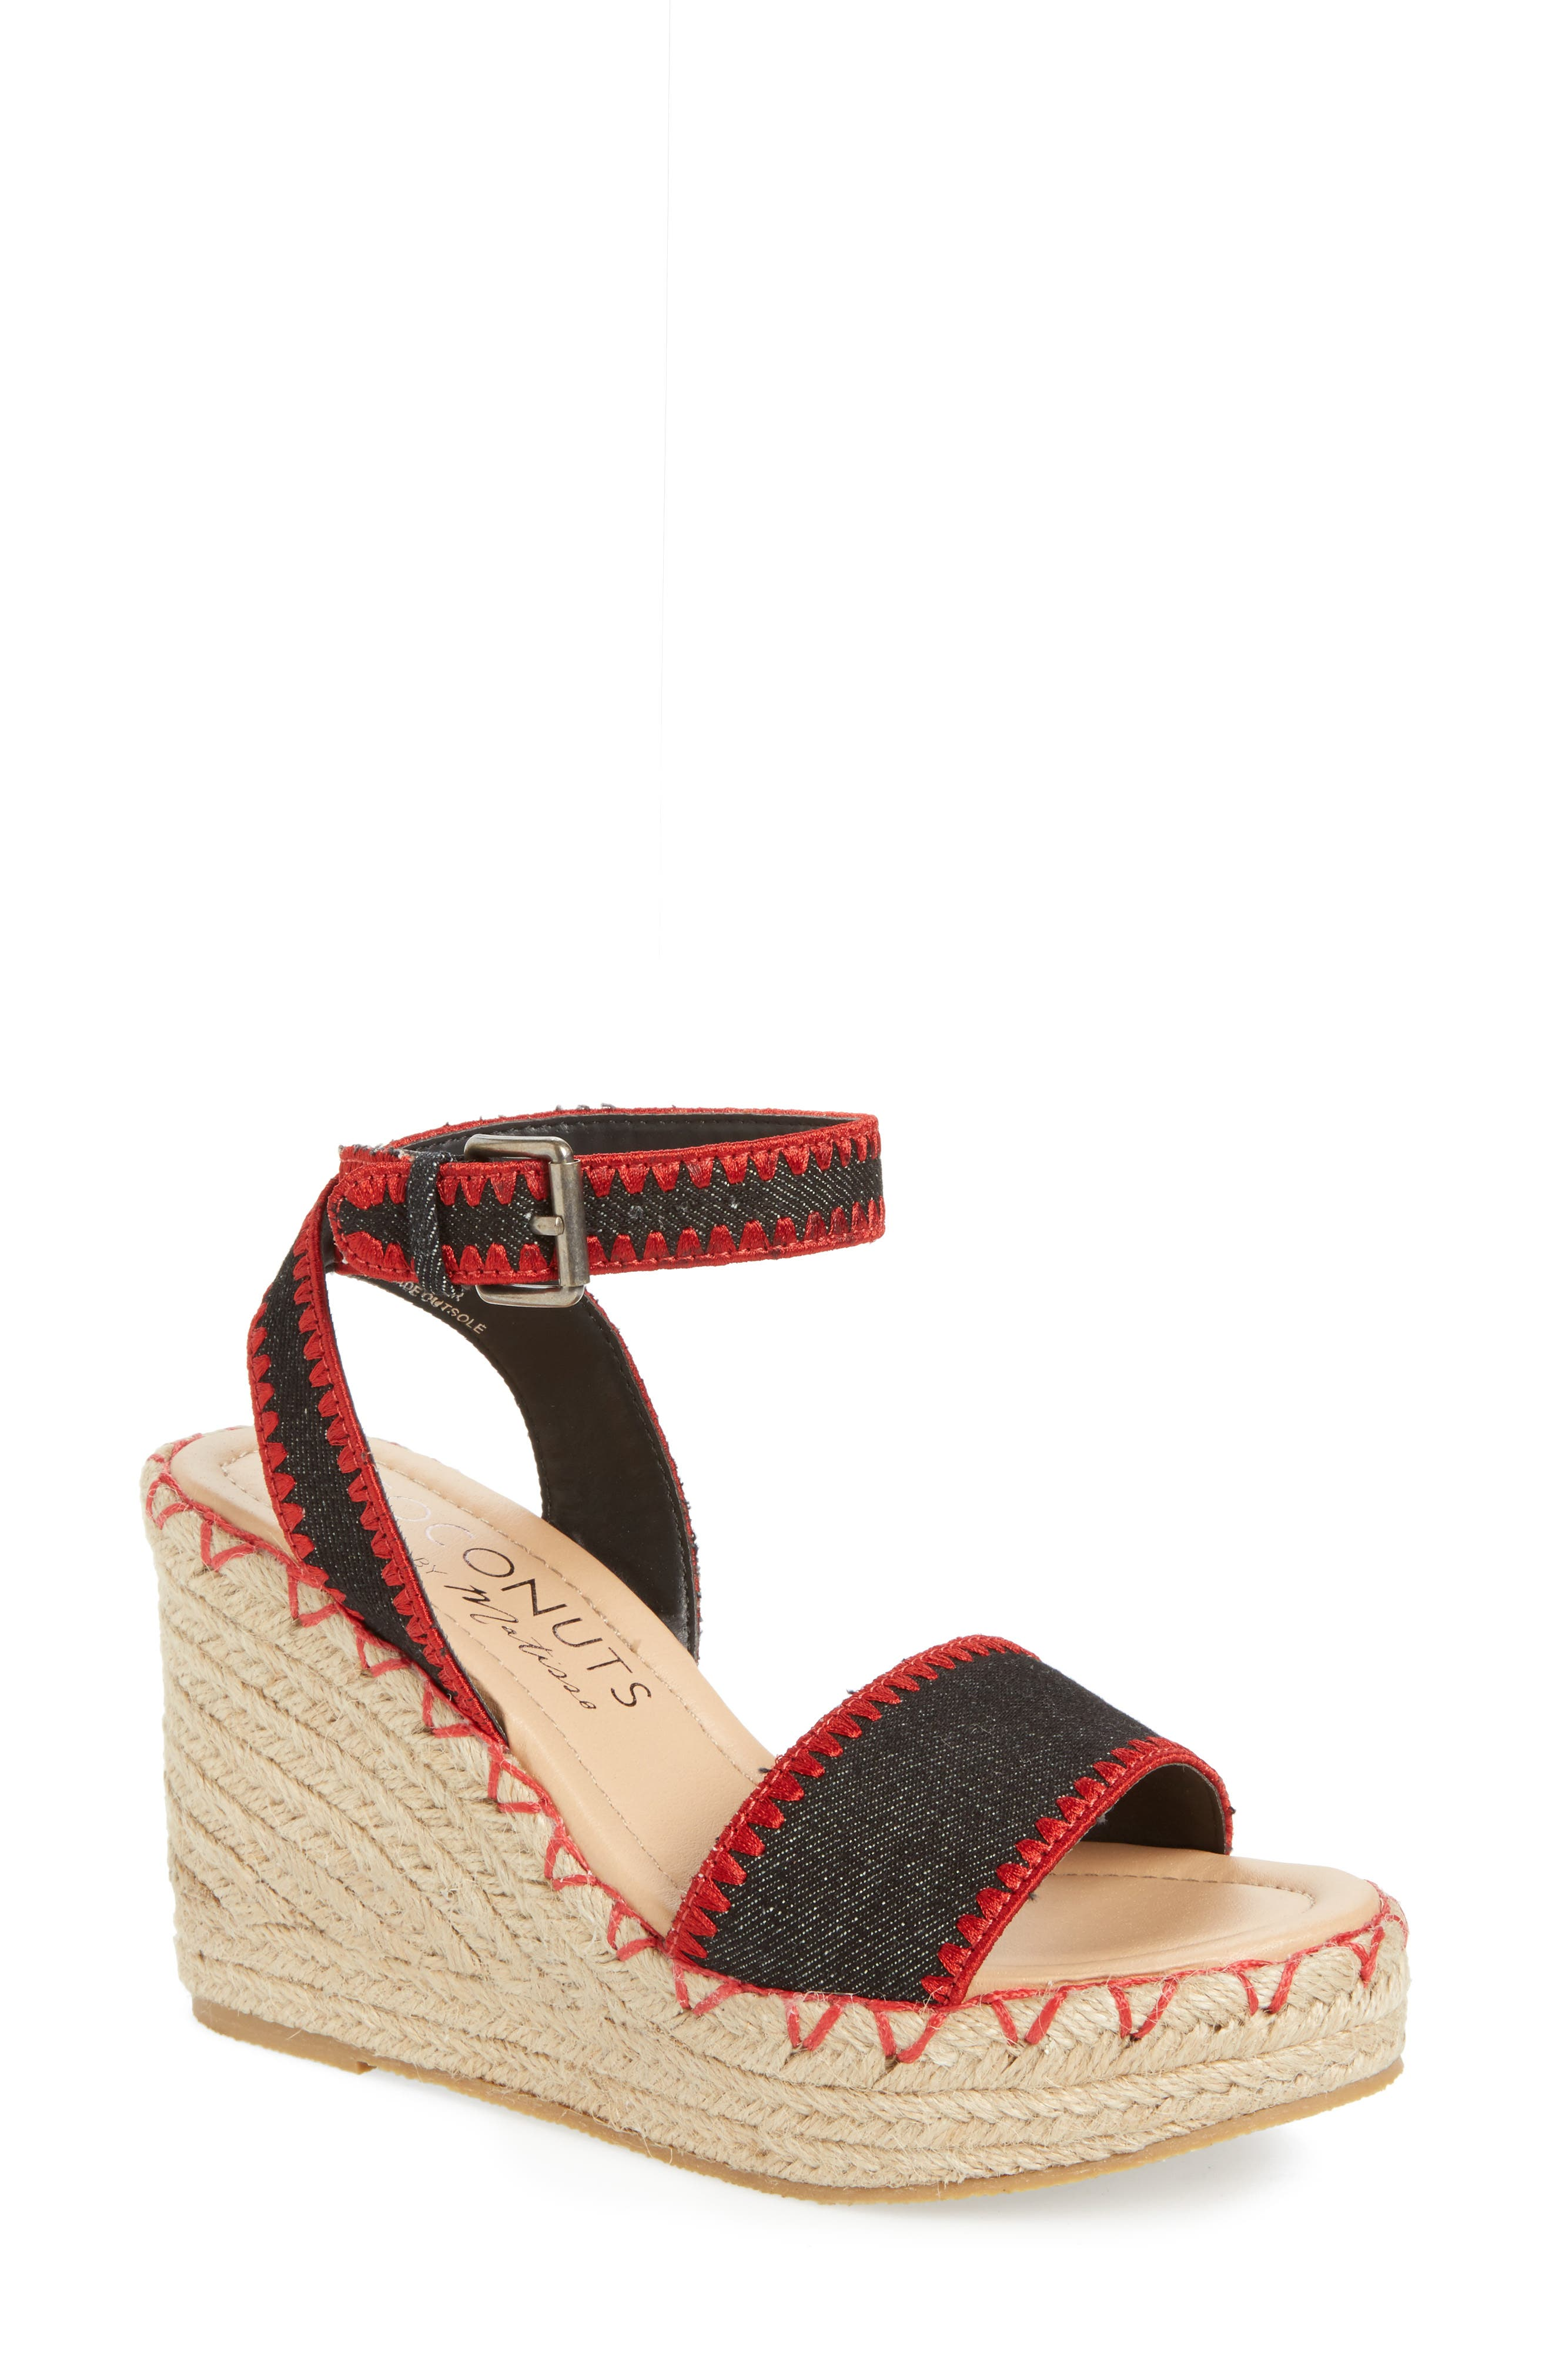 Coconuts by Matisse Frenchie Wedge Sandal,                             Main thumbnail 1, color,                             002